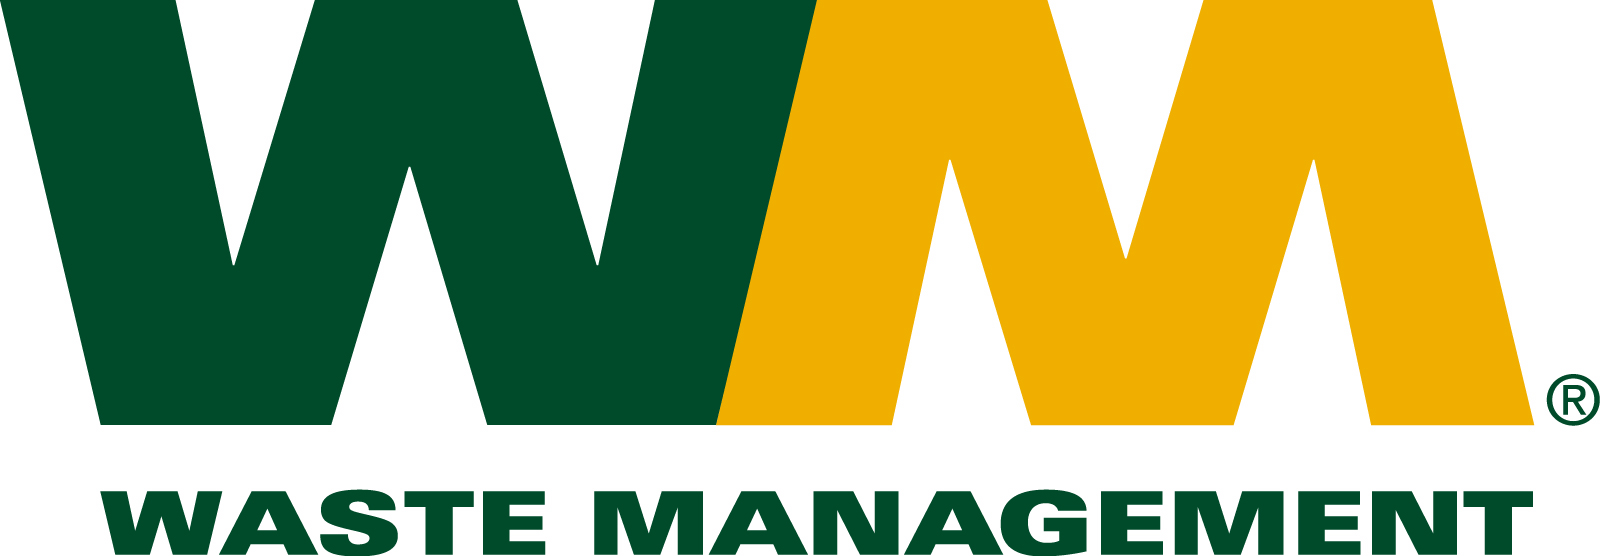 Waste Management Shows Profitable First Quarter